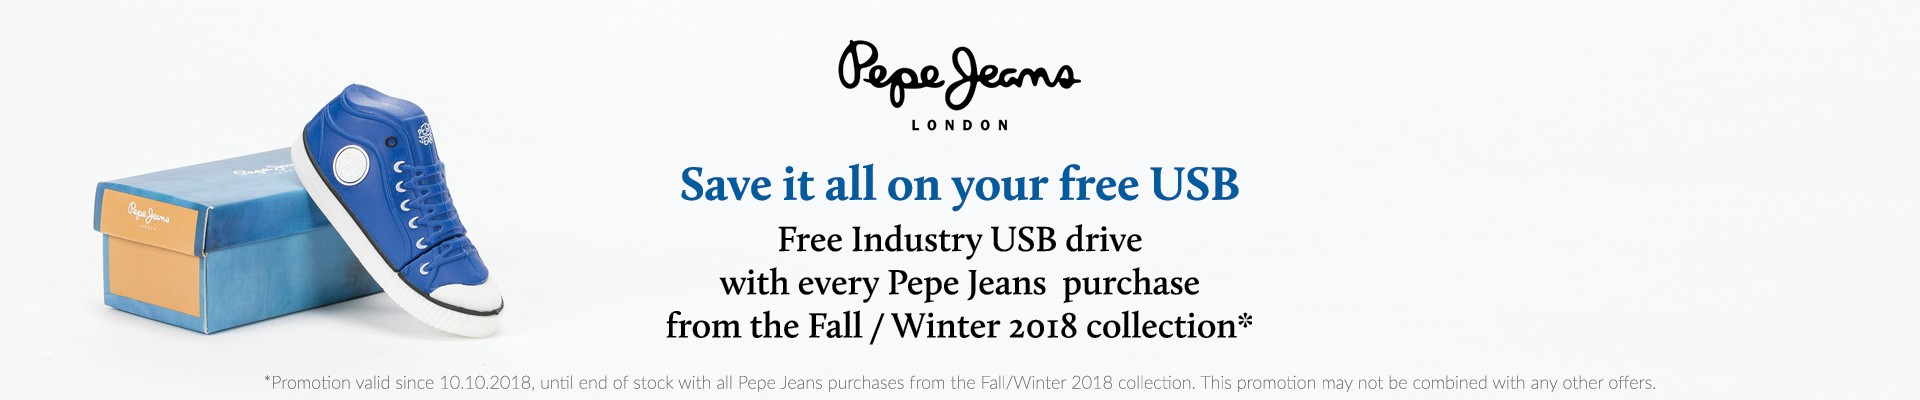 Promotion Pepe Jeans